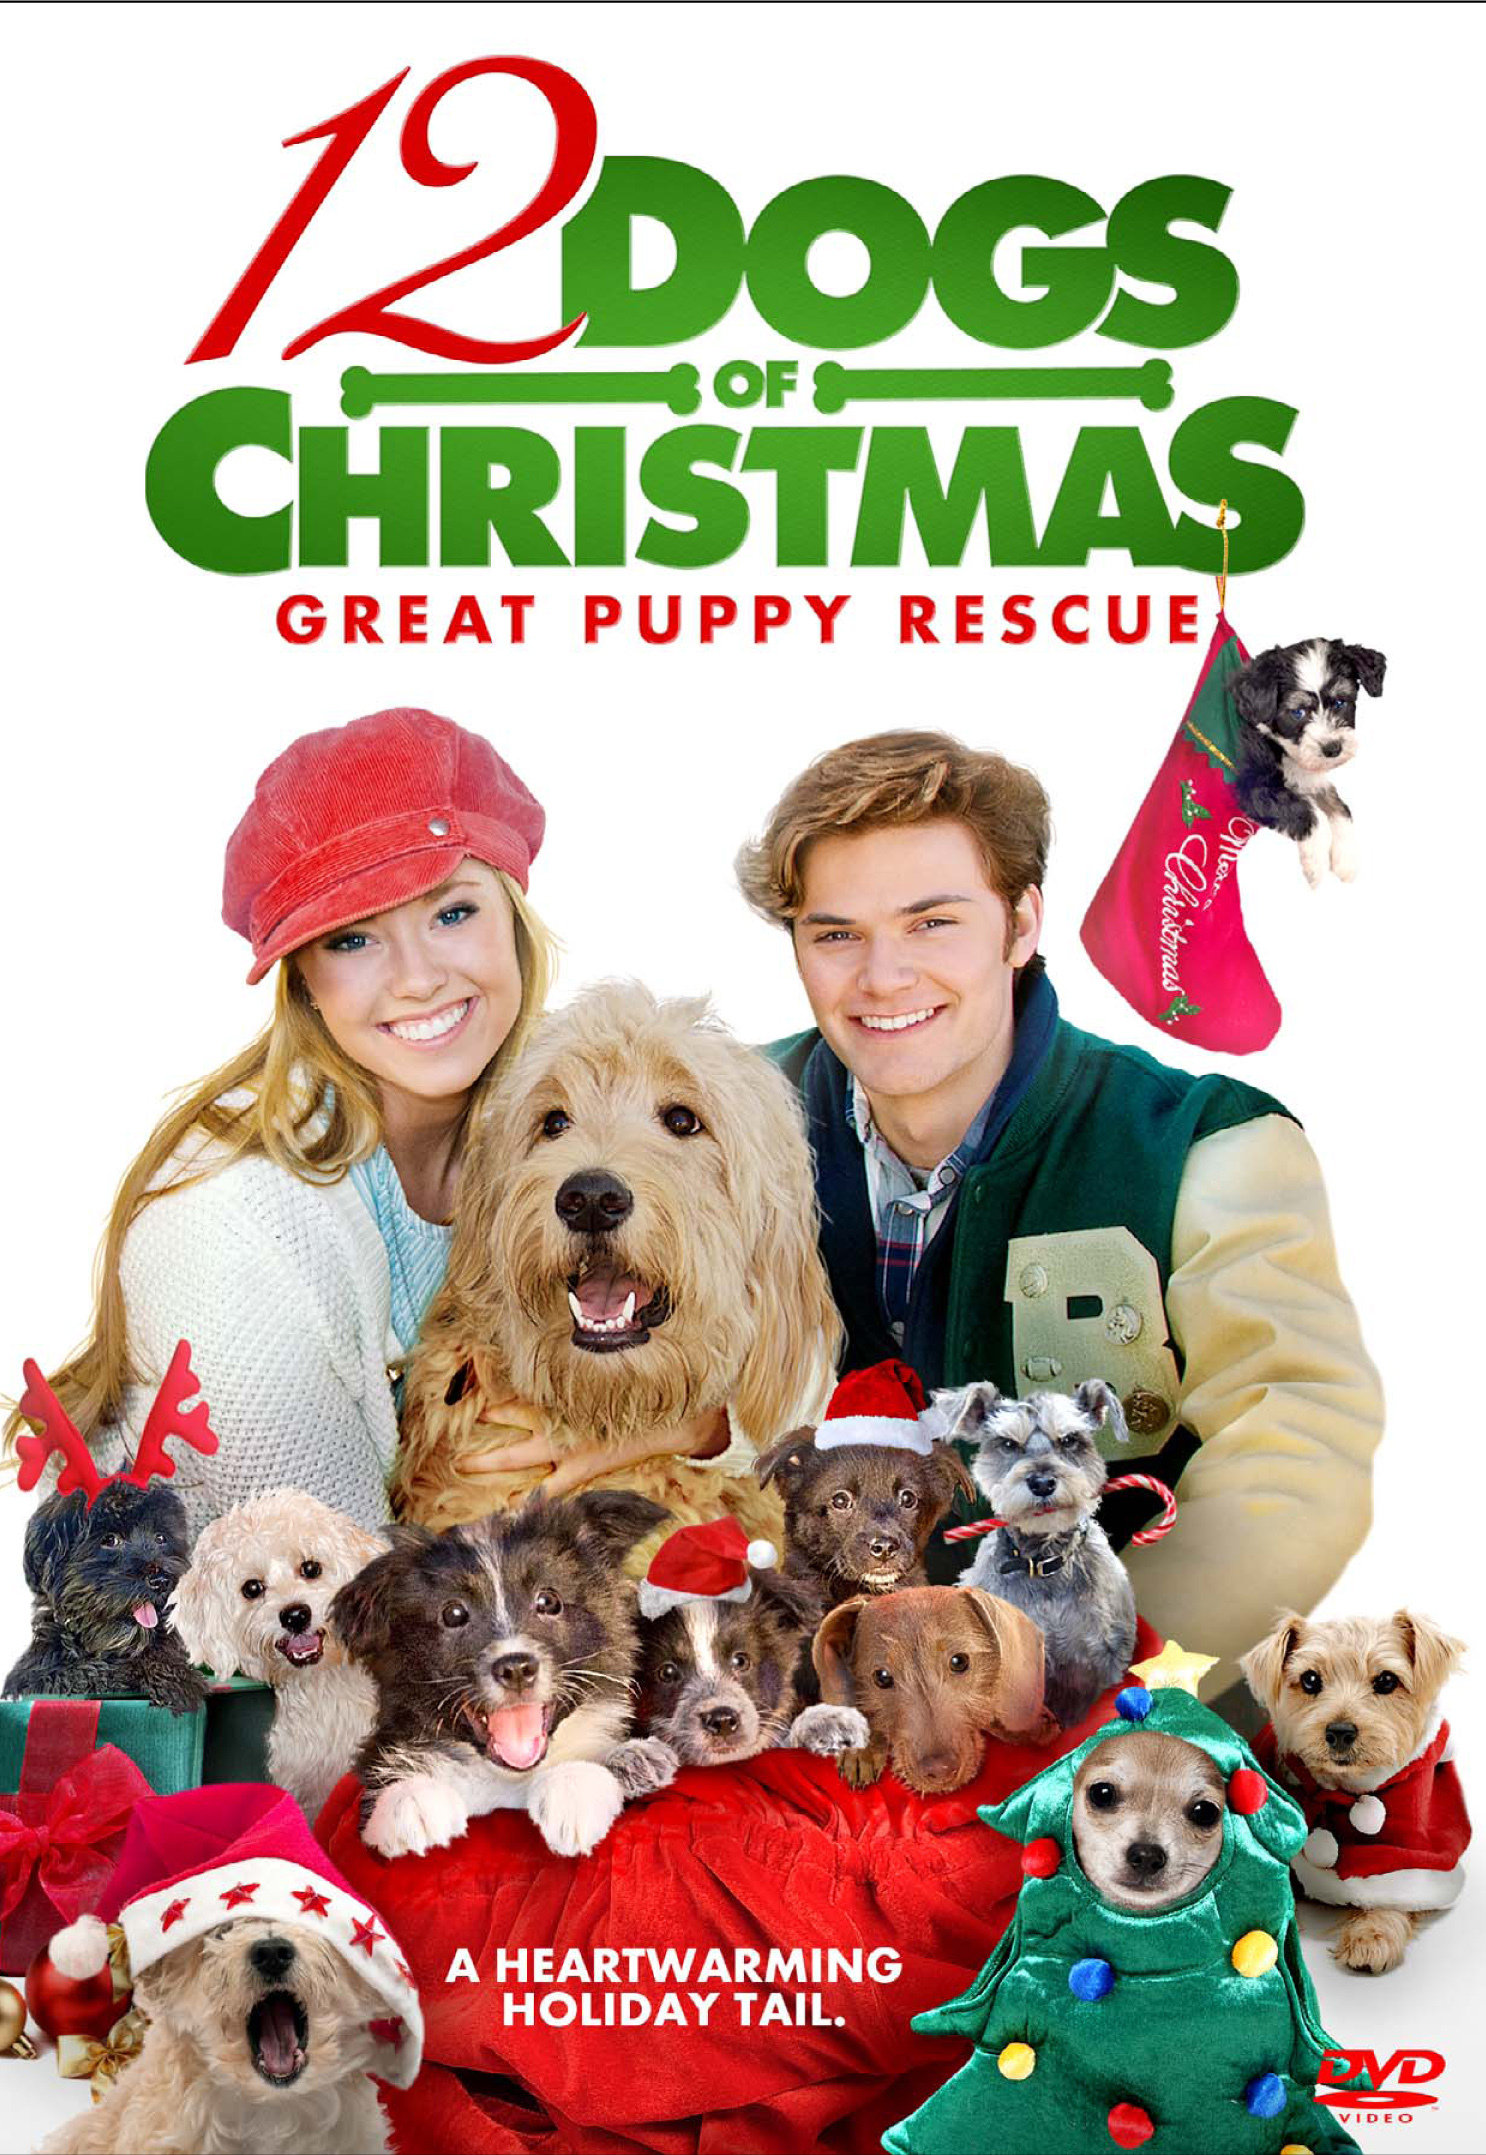 12 Dogs Of Christmas.12 Dogs Of Christmas Great Puppy Rescue 2012 Imdb